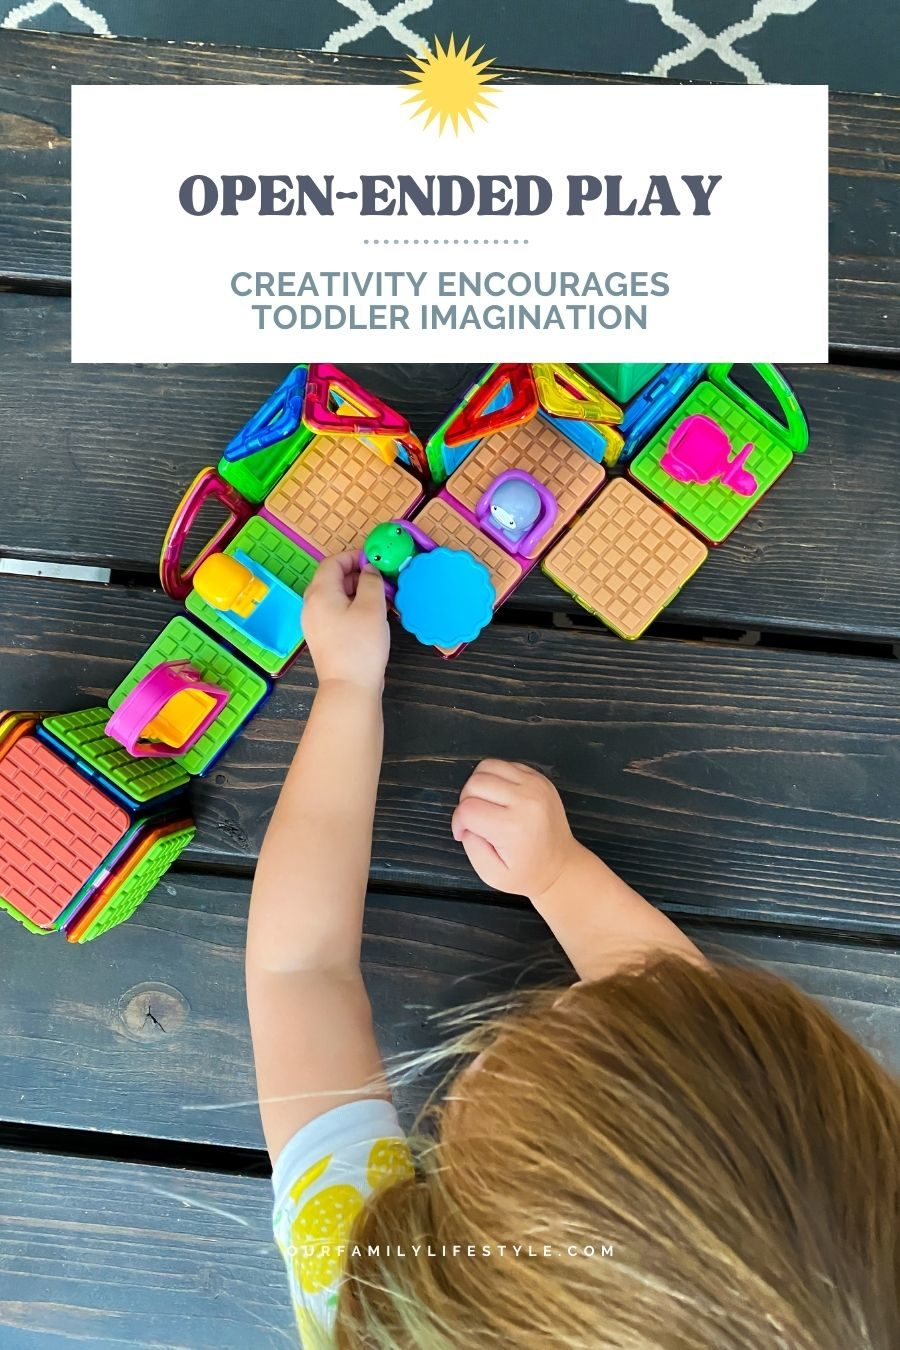 Open-ended Play: Creativity Encourages Toddler Imagination